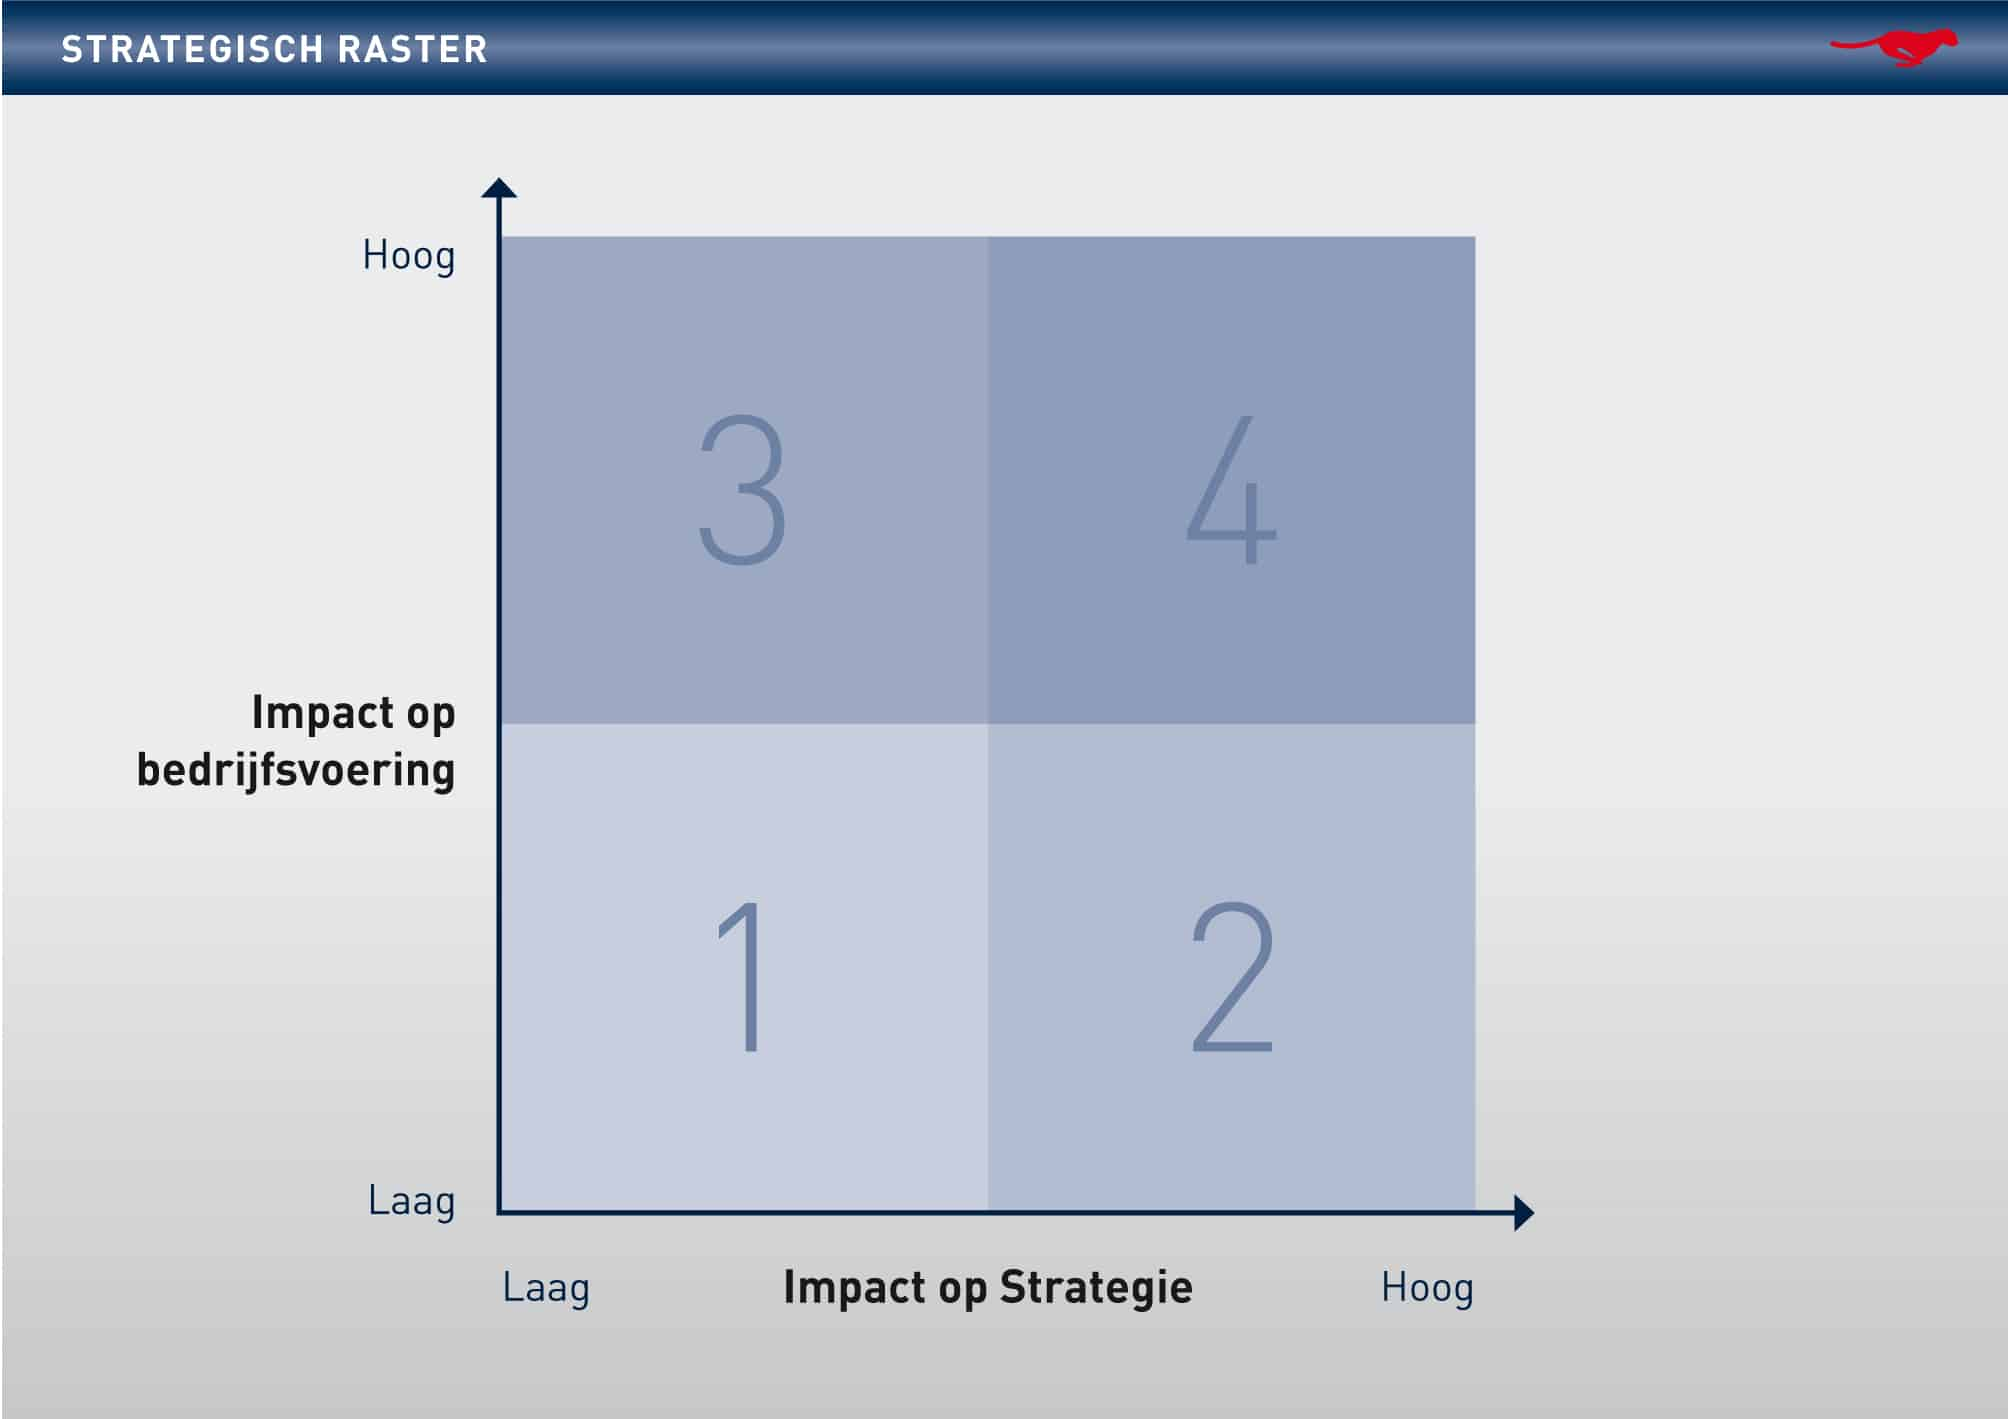 FLS_Graphic_Strategisch-raster